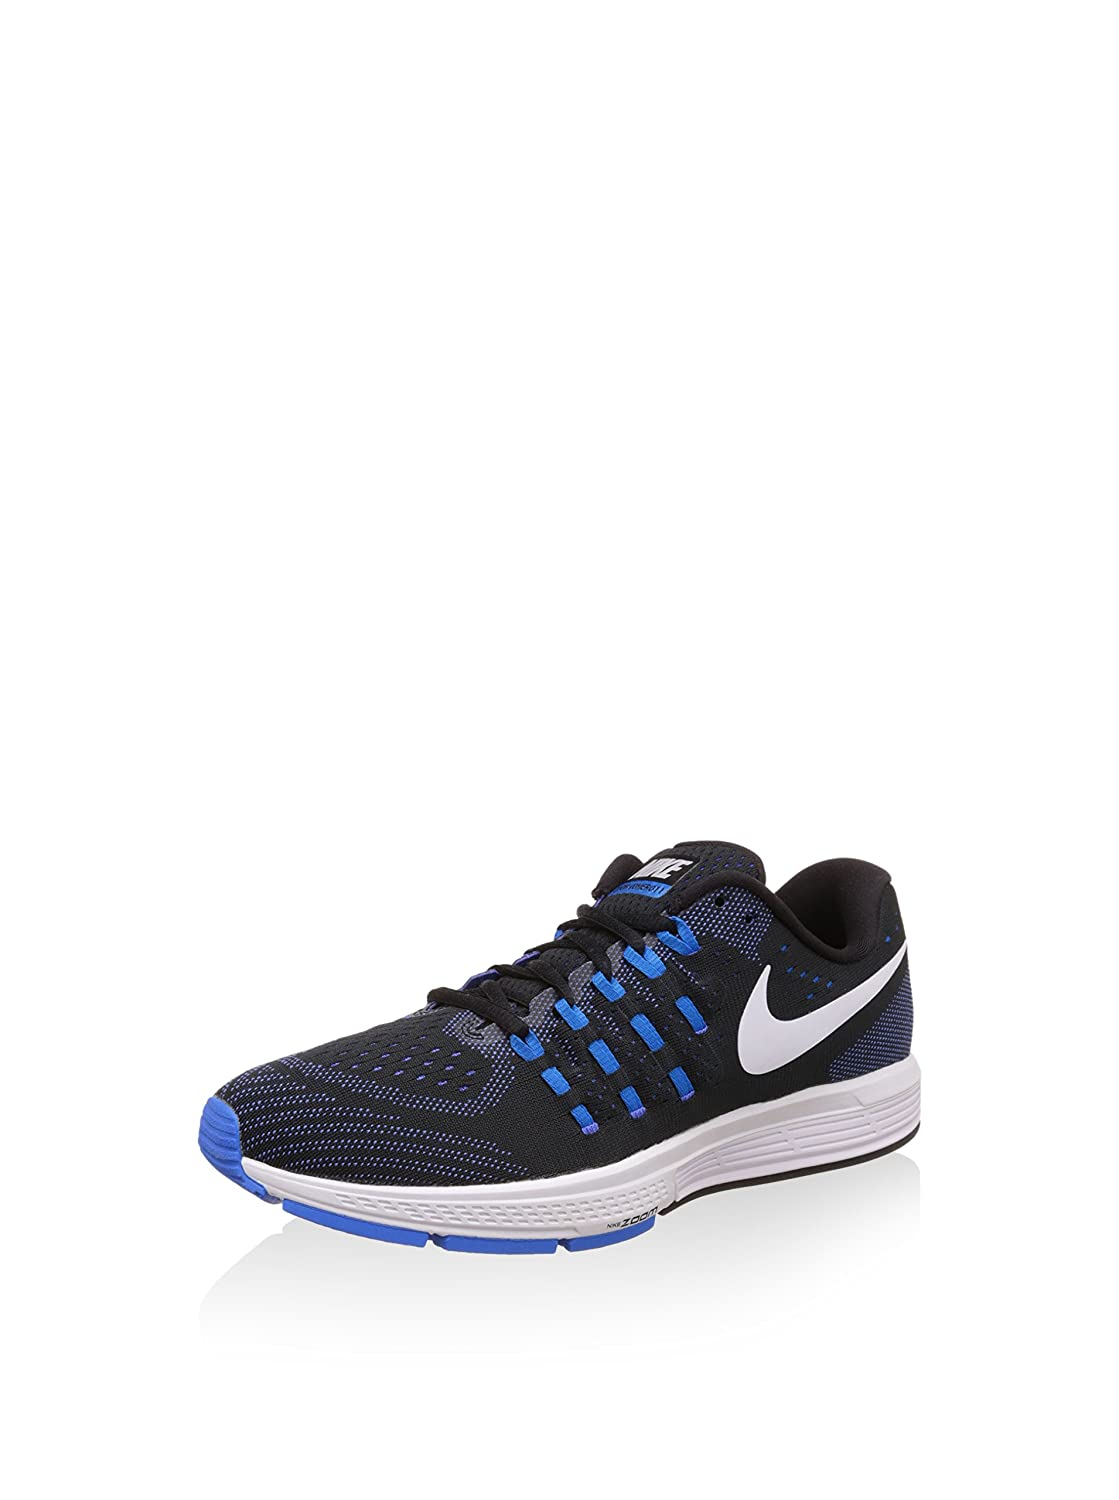 Nike Men's Air Zoom B01IOE6O7Q Vomero 11 Running Shoes B01IOE6O7Q Zoom 7 D(M) US|Black White Photo Blue 014 d6e824